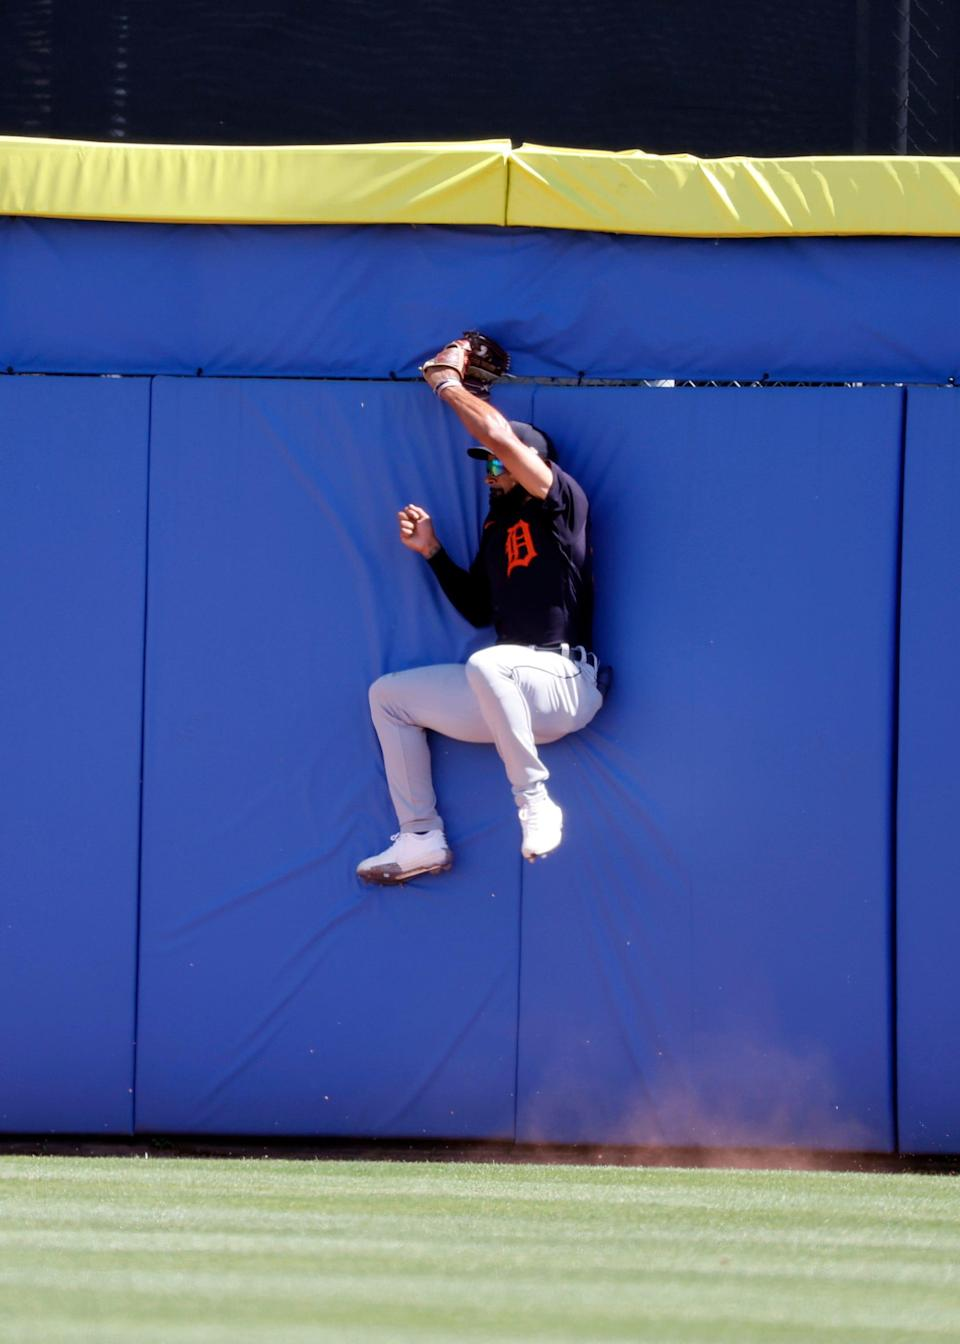 Detroit Tigers center fielder Derek Hill (54) catches a fly ball during the third inning of a spring training game against the Toronto Blue Jays on March 11, 2021, at TD Ballpark in Dunedin, Florida.